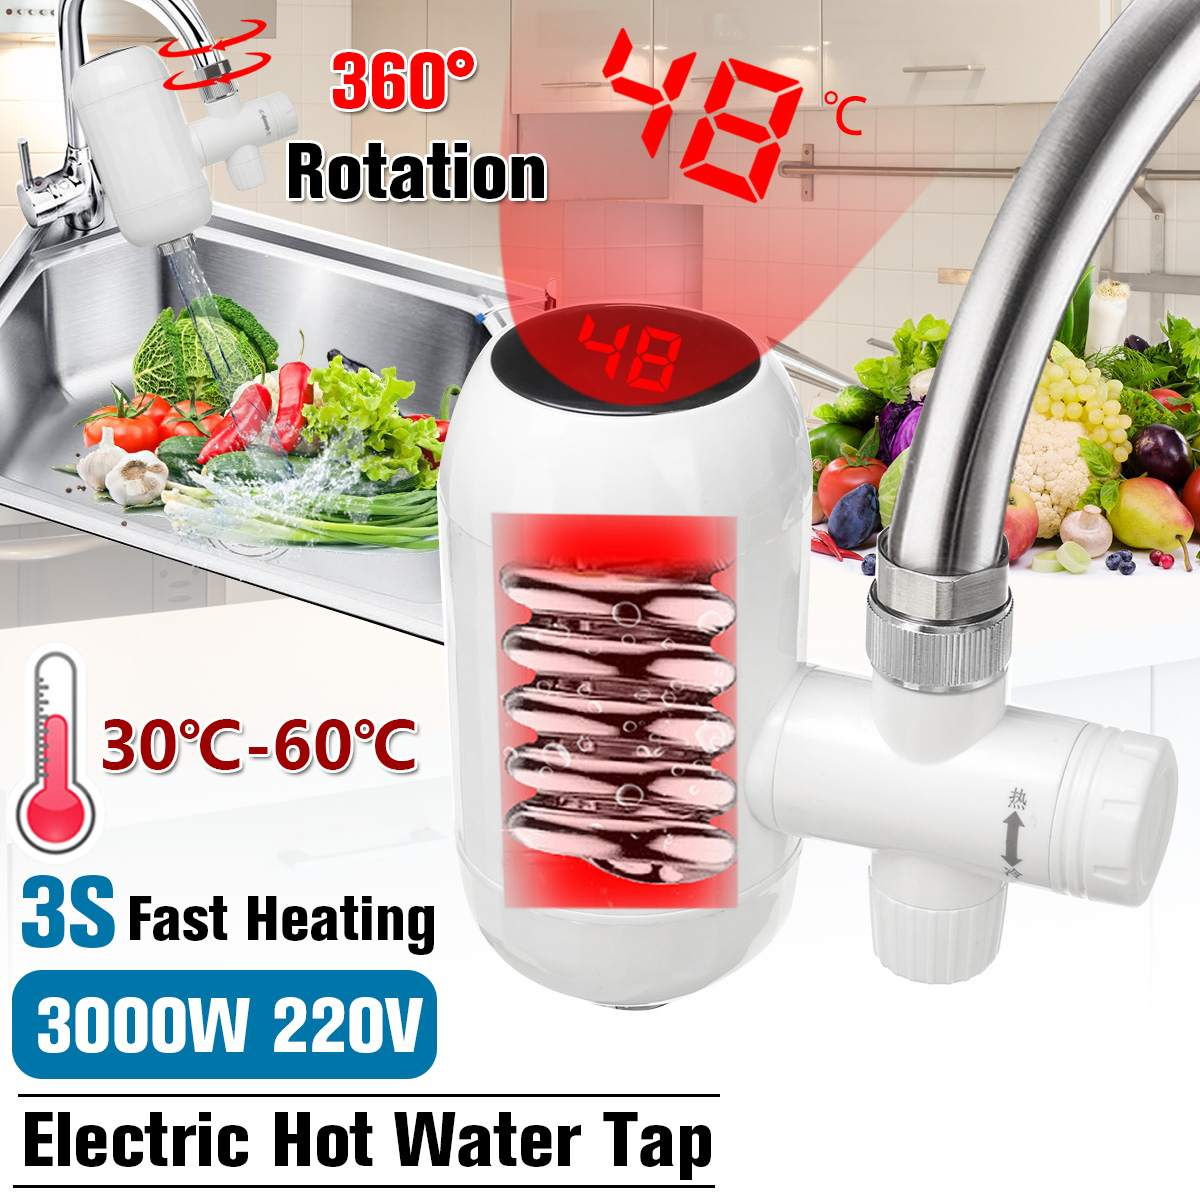 3000W Temperature Display Instant Hot Water Tap Electric Faucet Kitchen 3S Instant Water Heater Water Heating 360° Rotatable